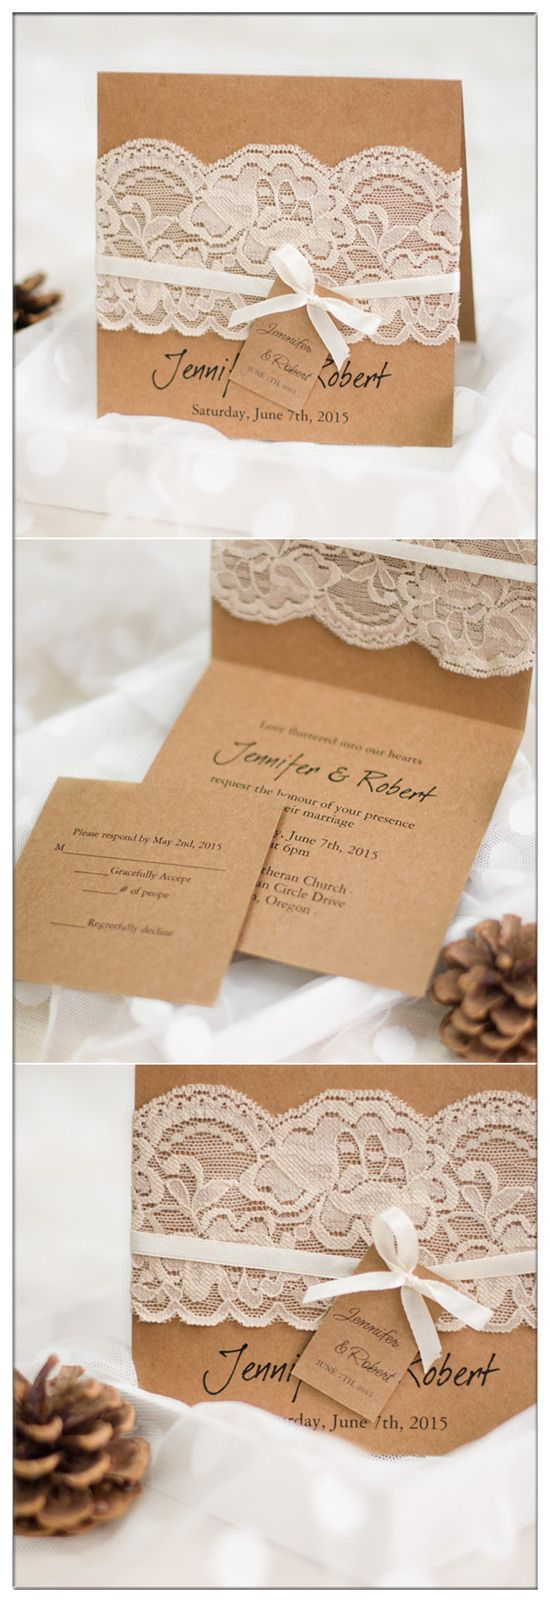 Michaels crafts wedding invitations - Best 20 Michaels Invitations Ideas On Pinterest Wedding Invitations Wedding Paper And Wedding Invitations Elegant Modern